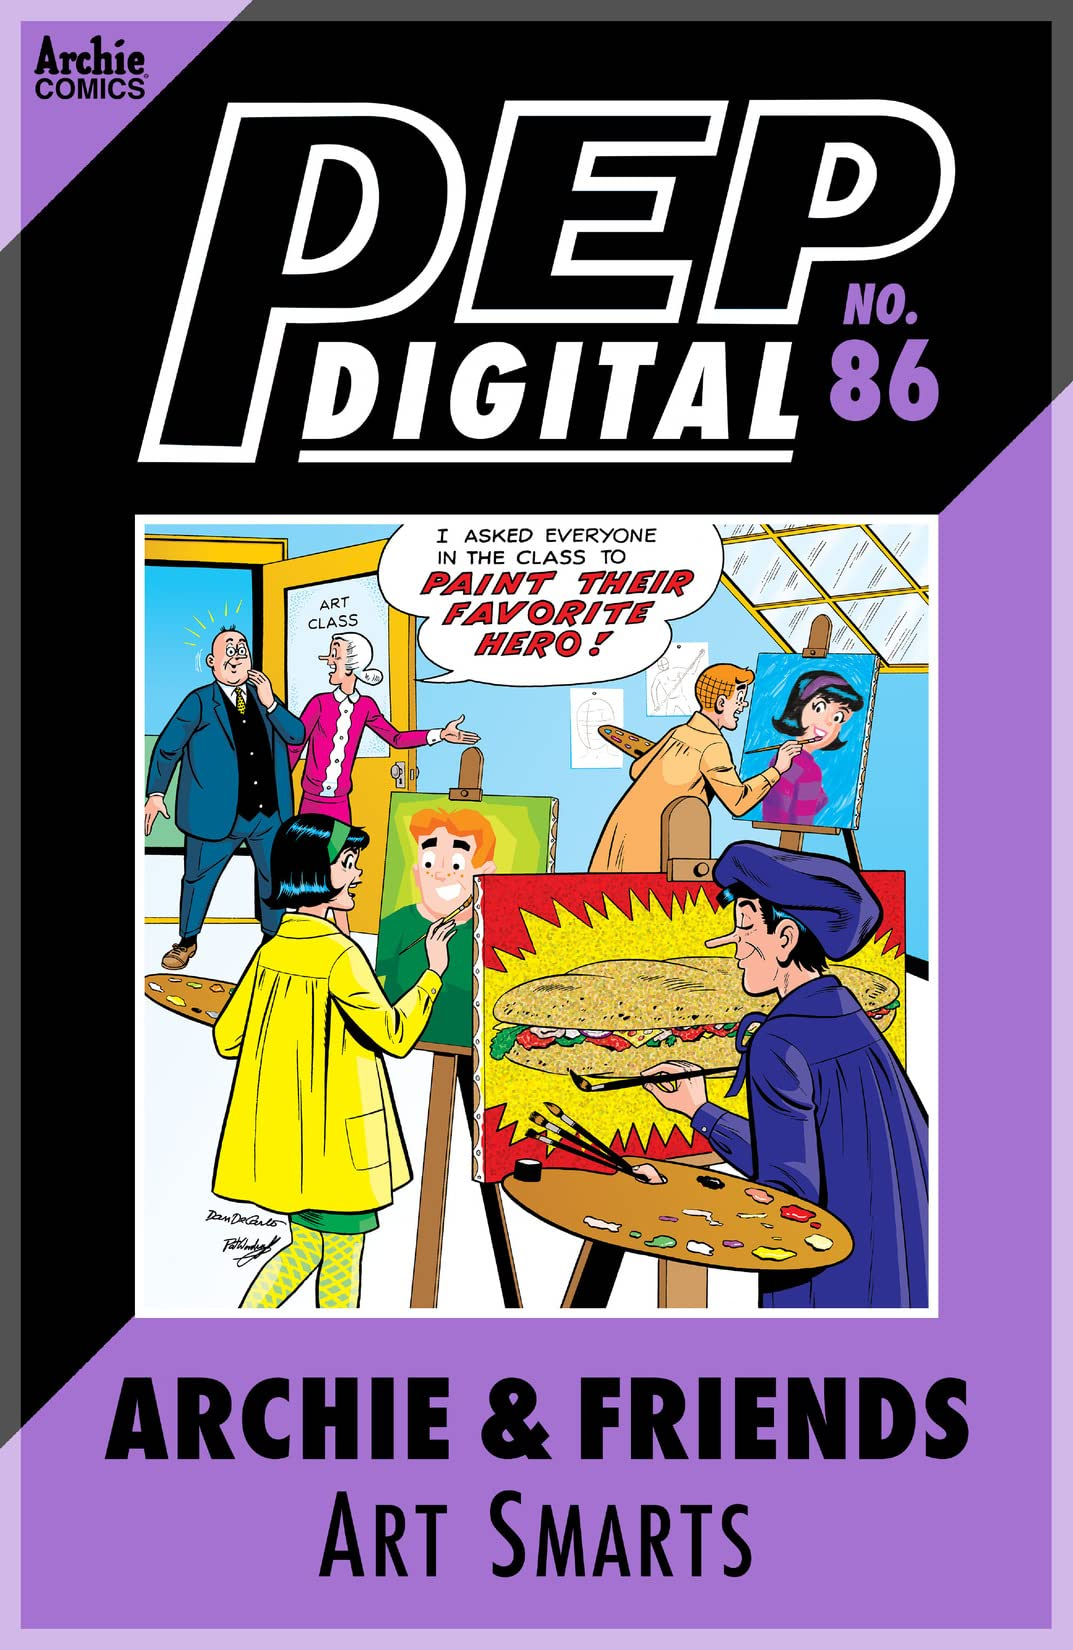 PEP Digital #86: Archie & Friends Art Smarts